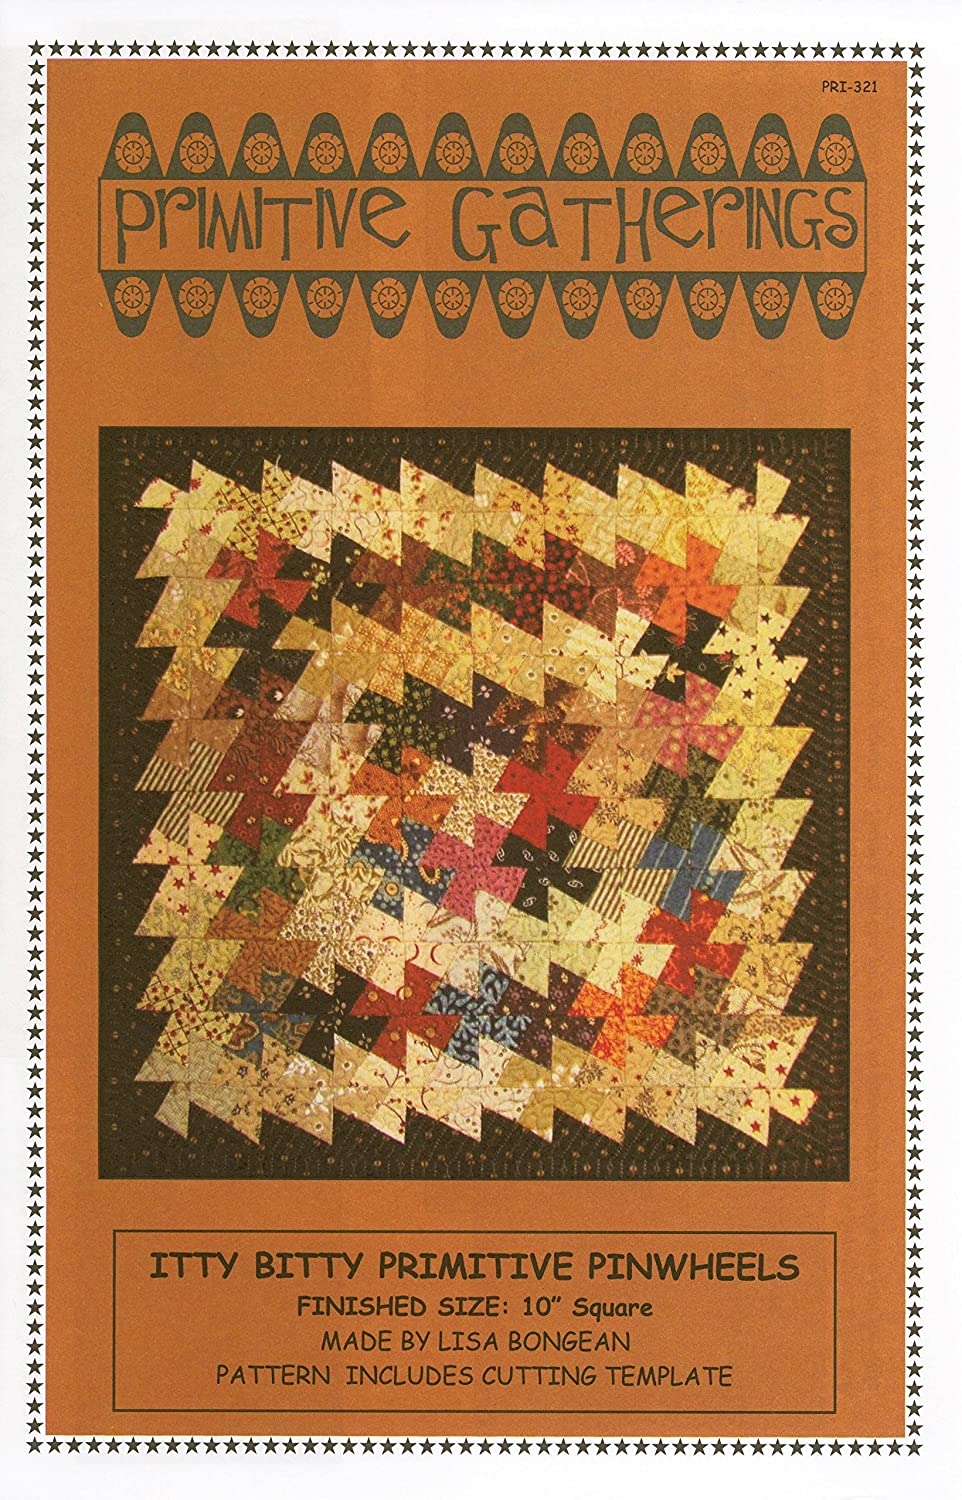 Itty Bitty Primitive Pinwheels Pattern ~ Pinwheel Tool Quilting Template Ruler by Primitive Gatherings ~ 1 Finished Pinwheel ~ 10 Finished Block by Primitive Gatherings 4336997480